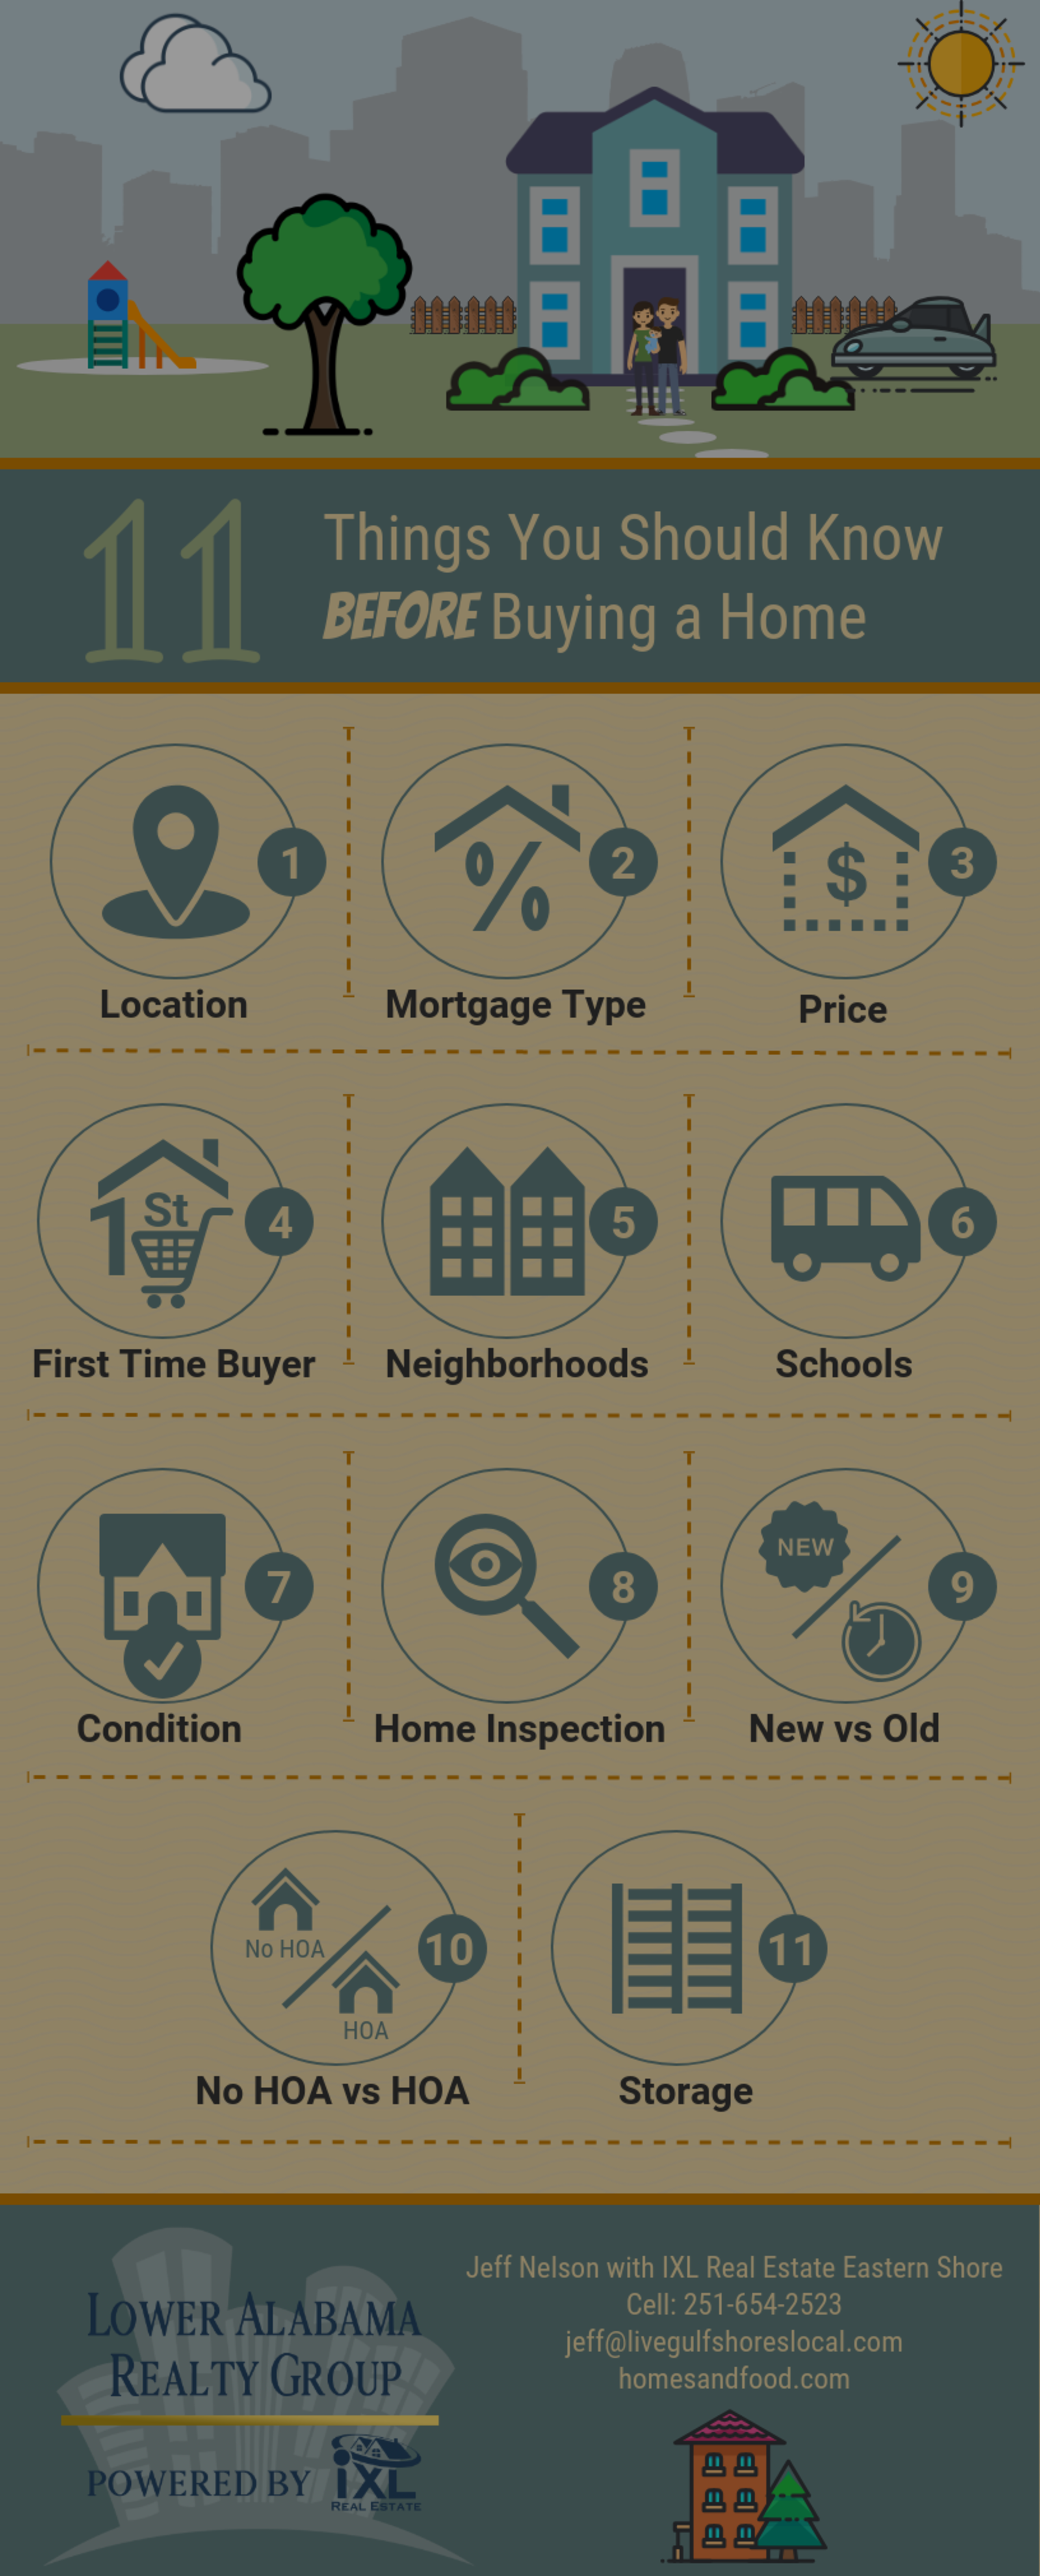 11 Things to Know Before Buying a Home